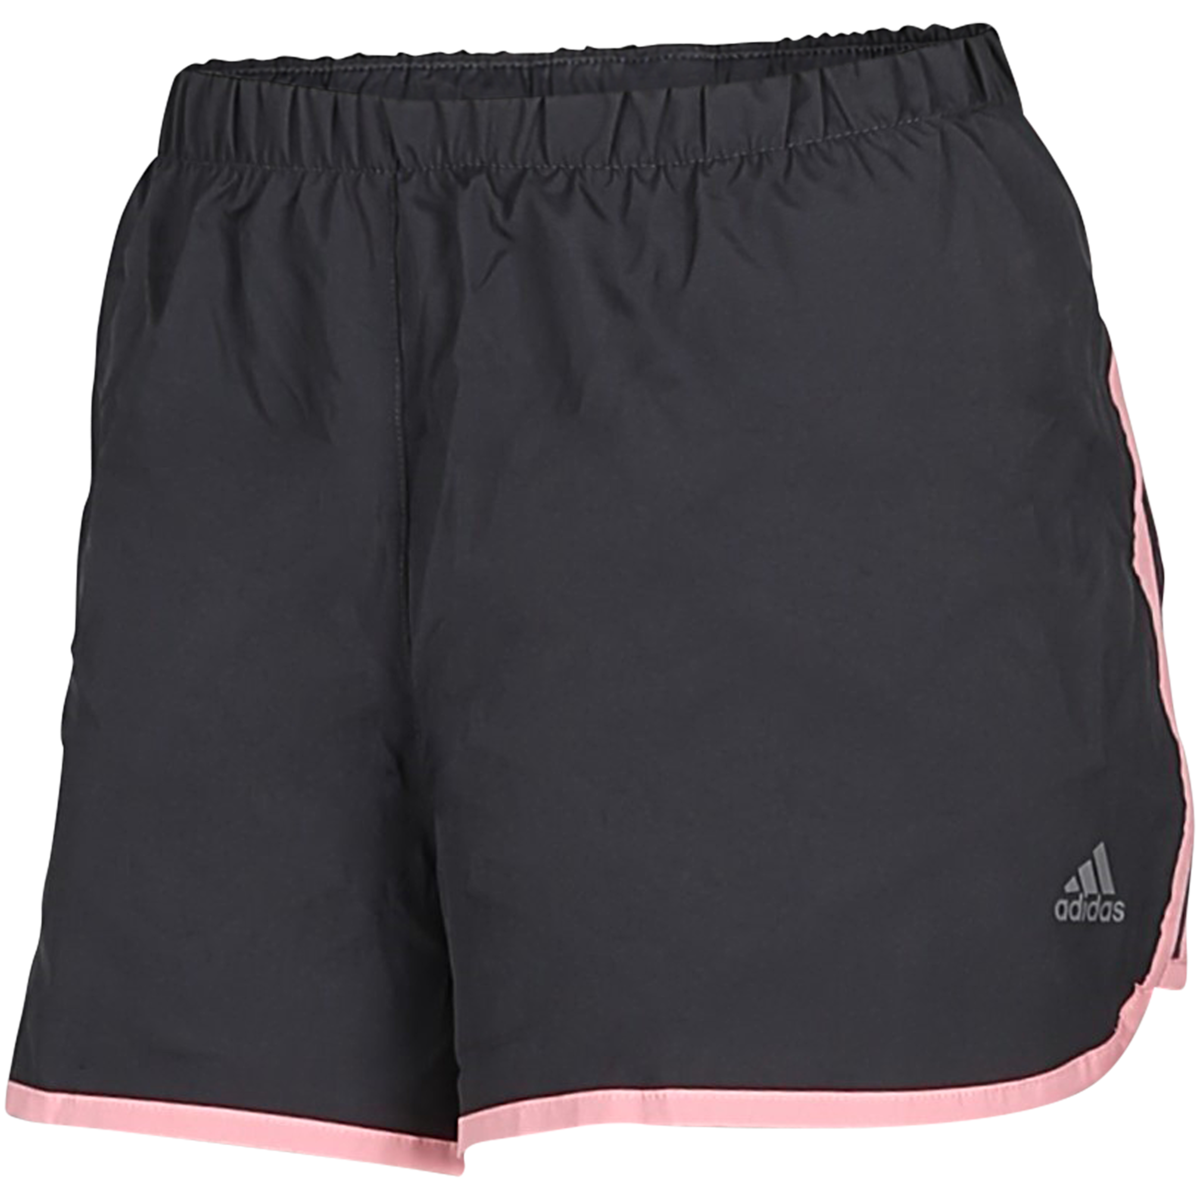 adidas - Marathon 20 Shorts - Sort